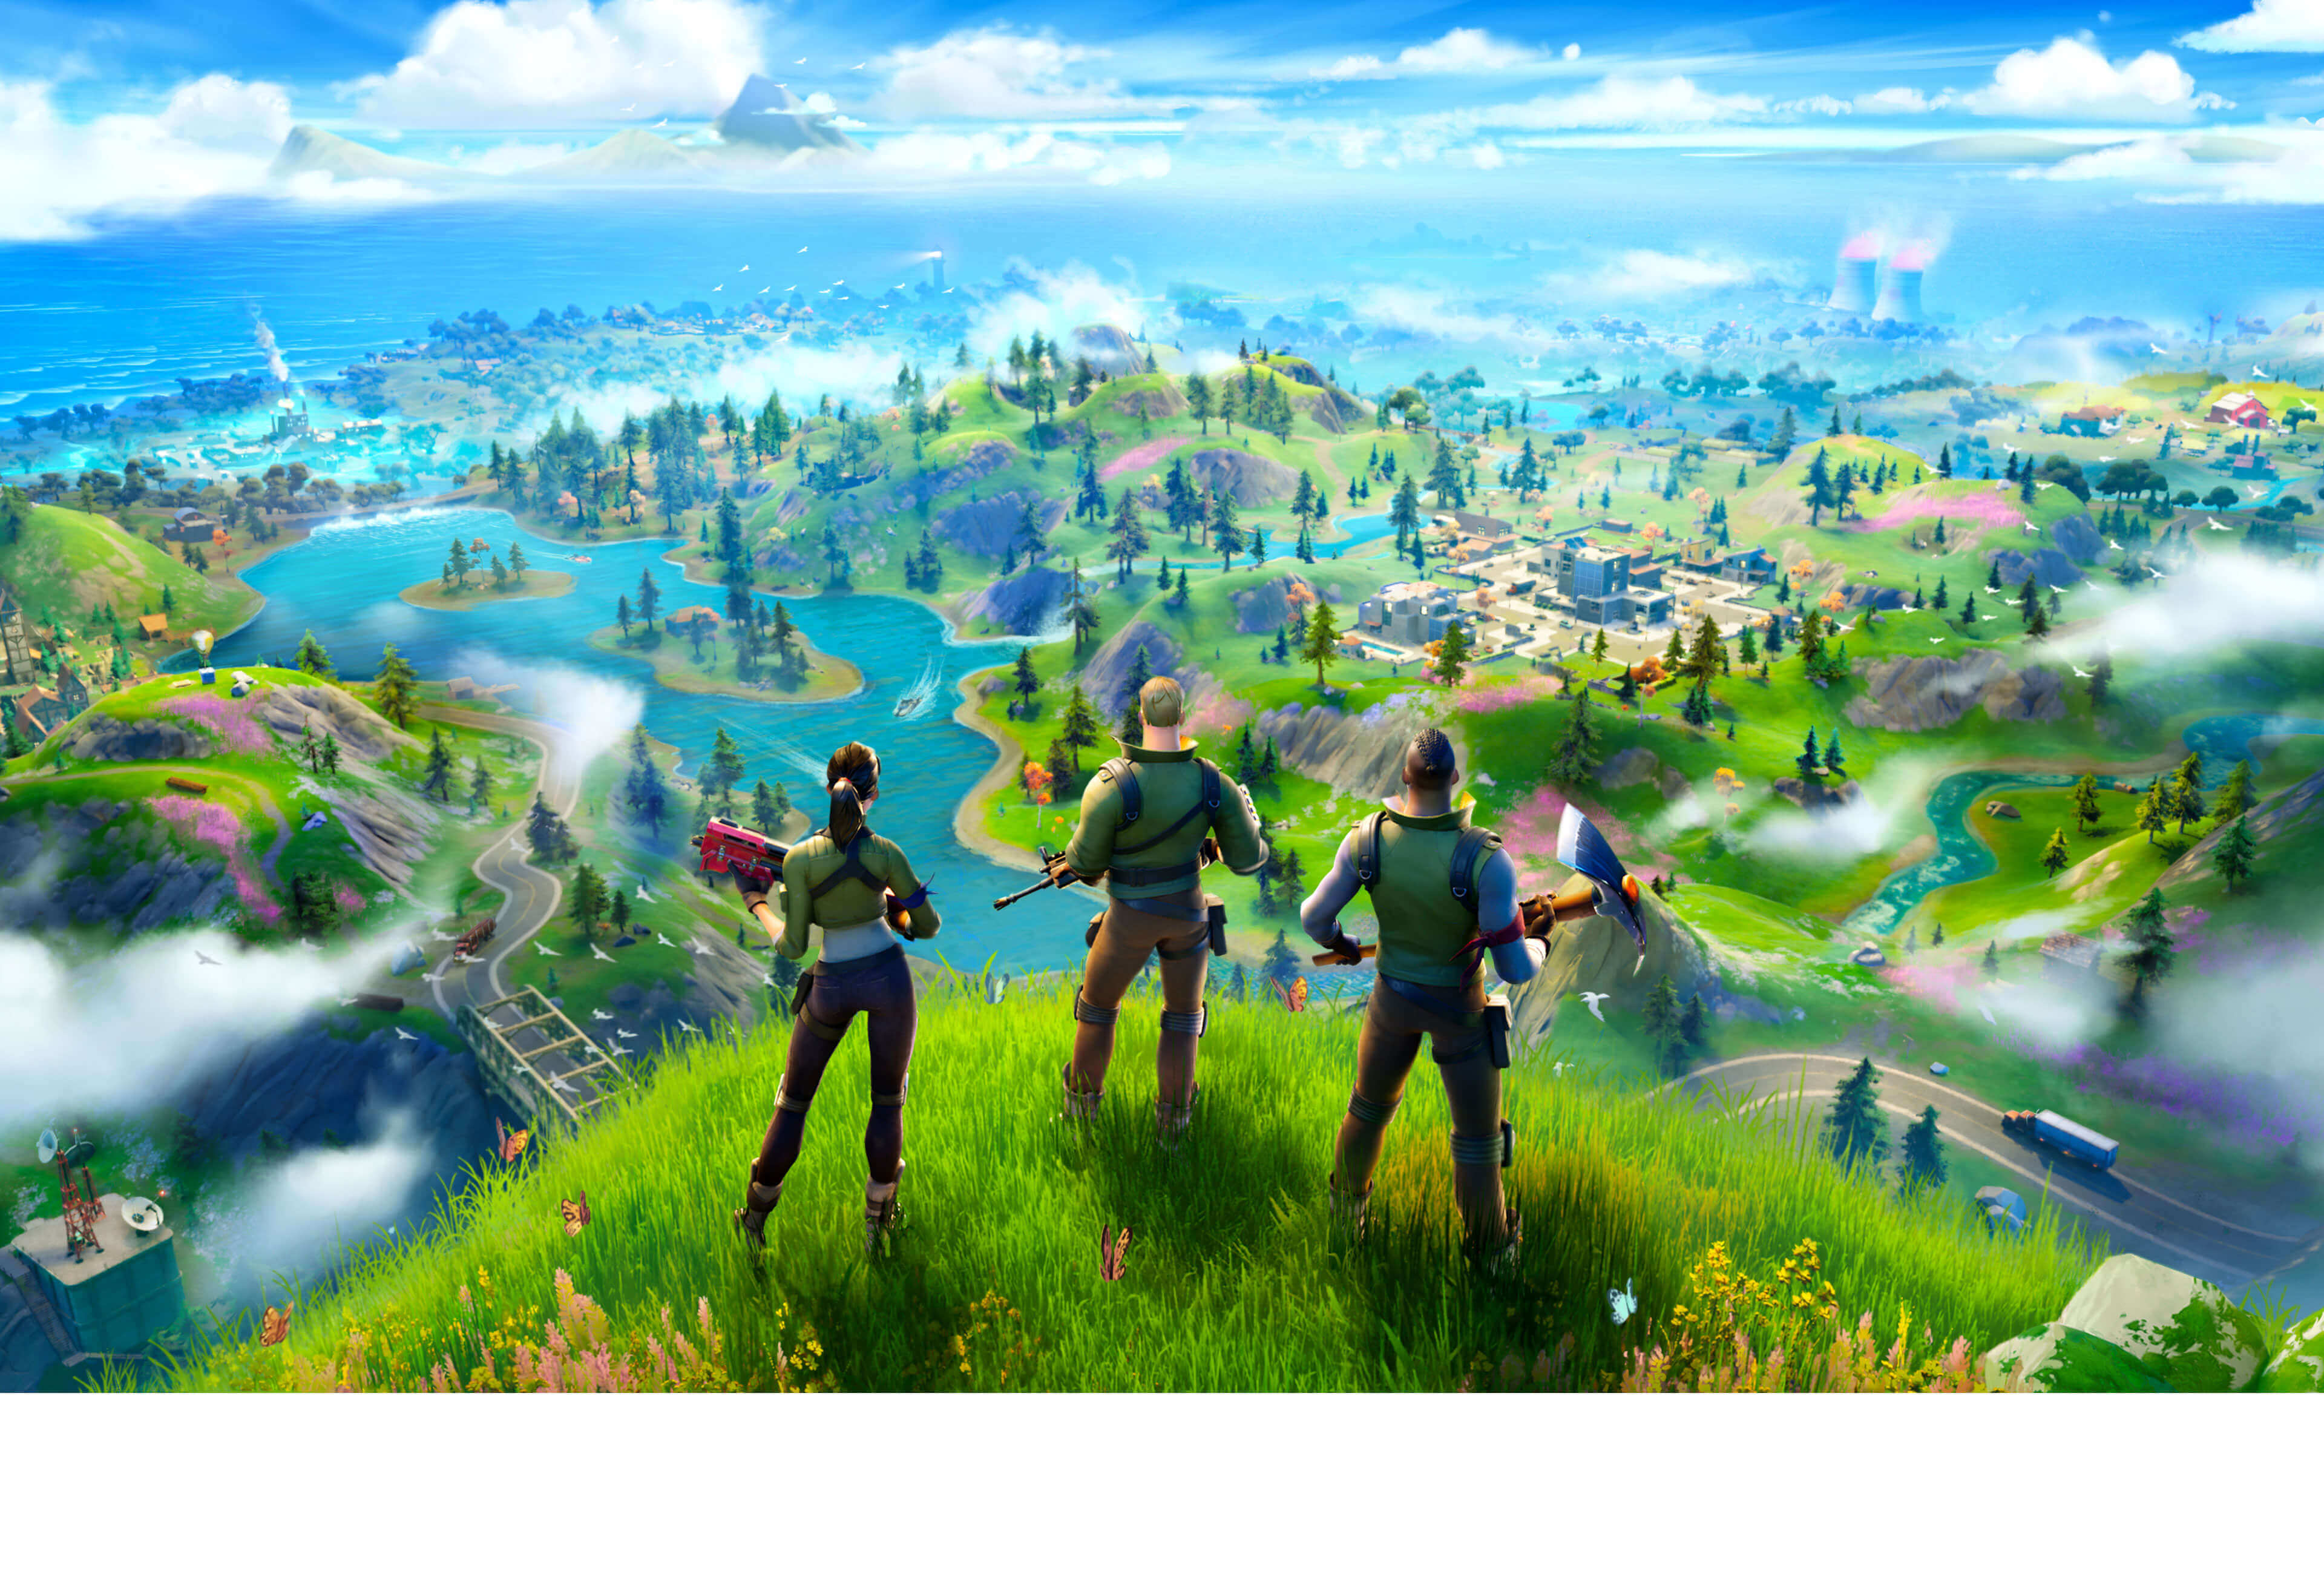 NowOfficial Free Fortnite Play Games SiteEpic NvynPmwO80